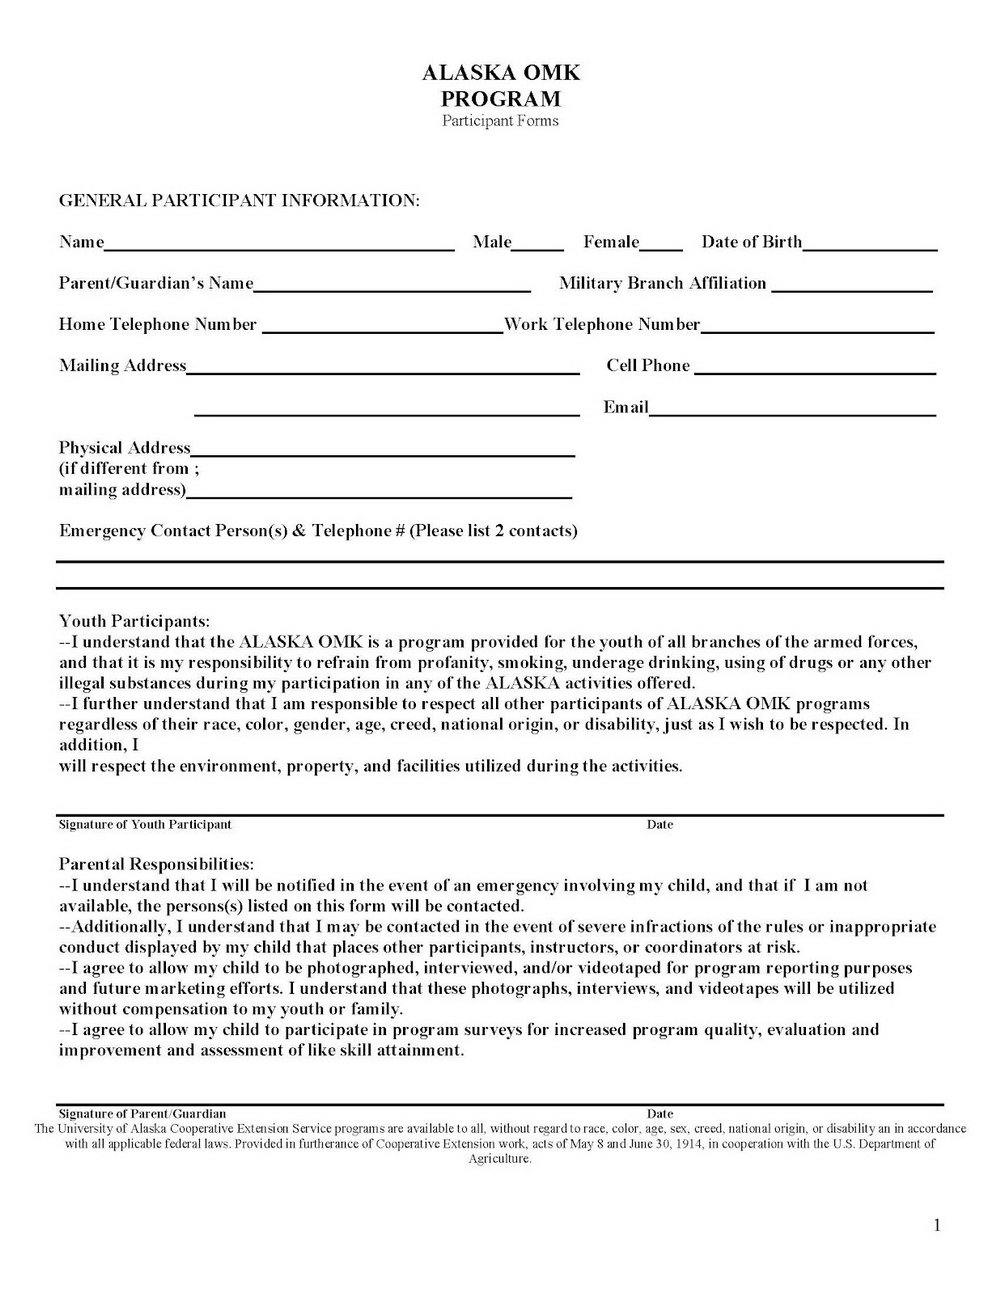 Job Application For Kmart Pdf